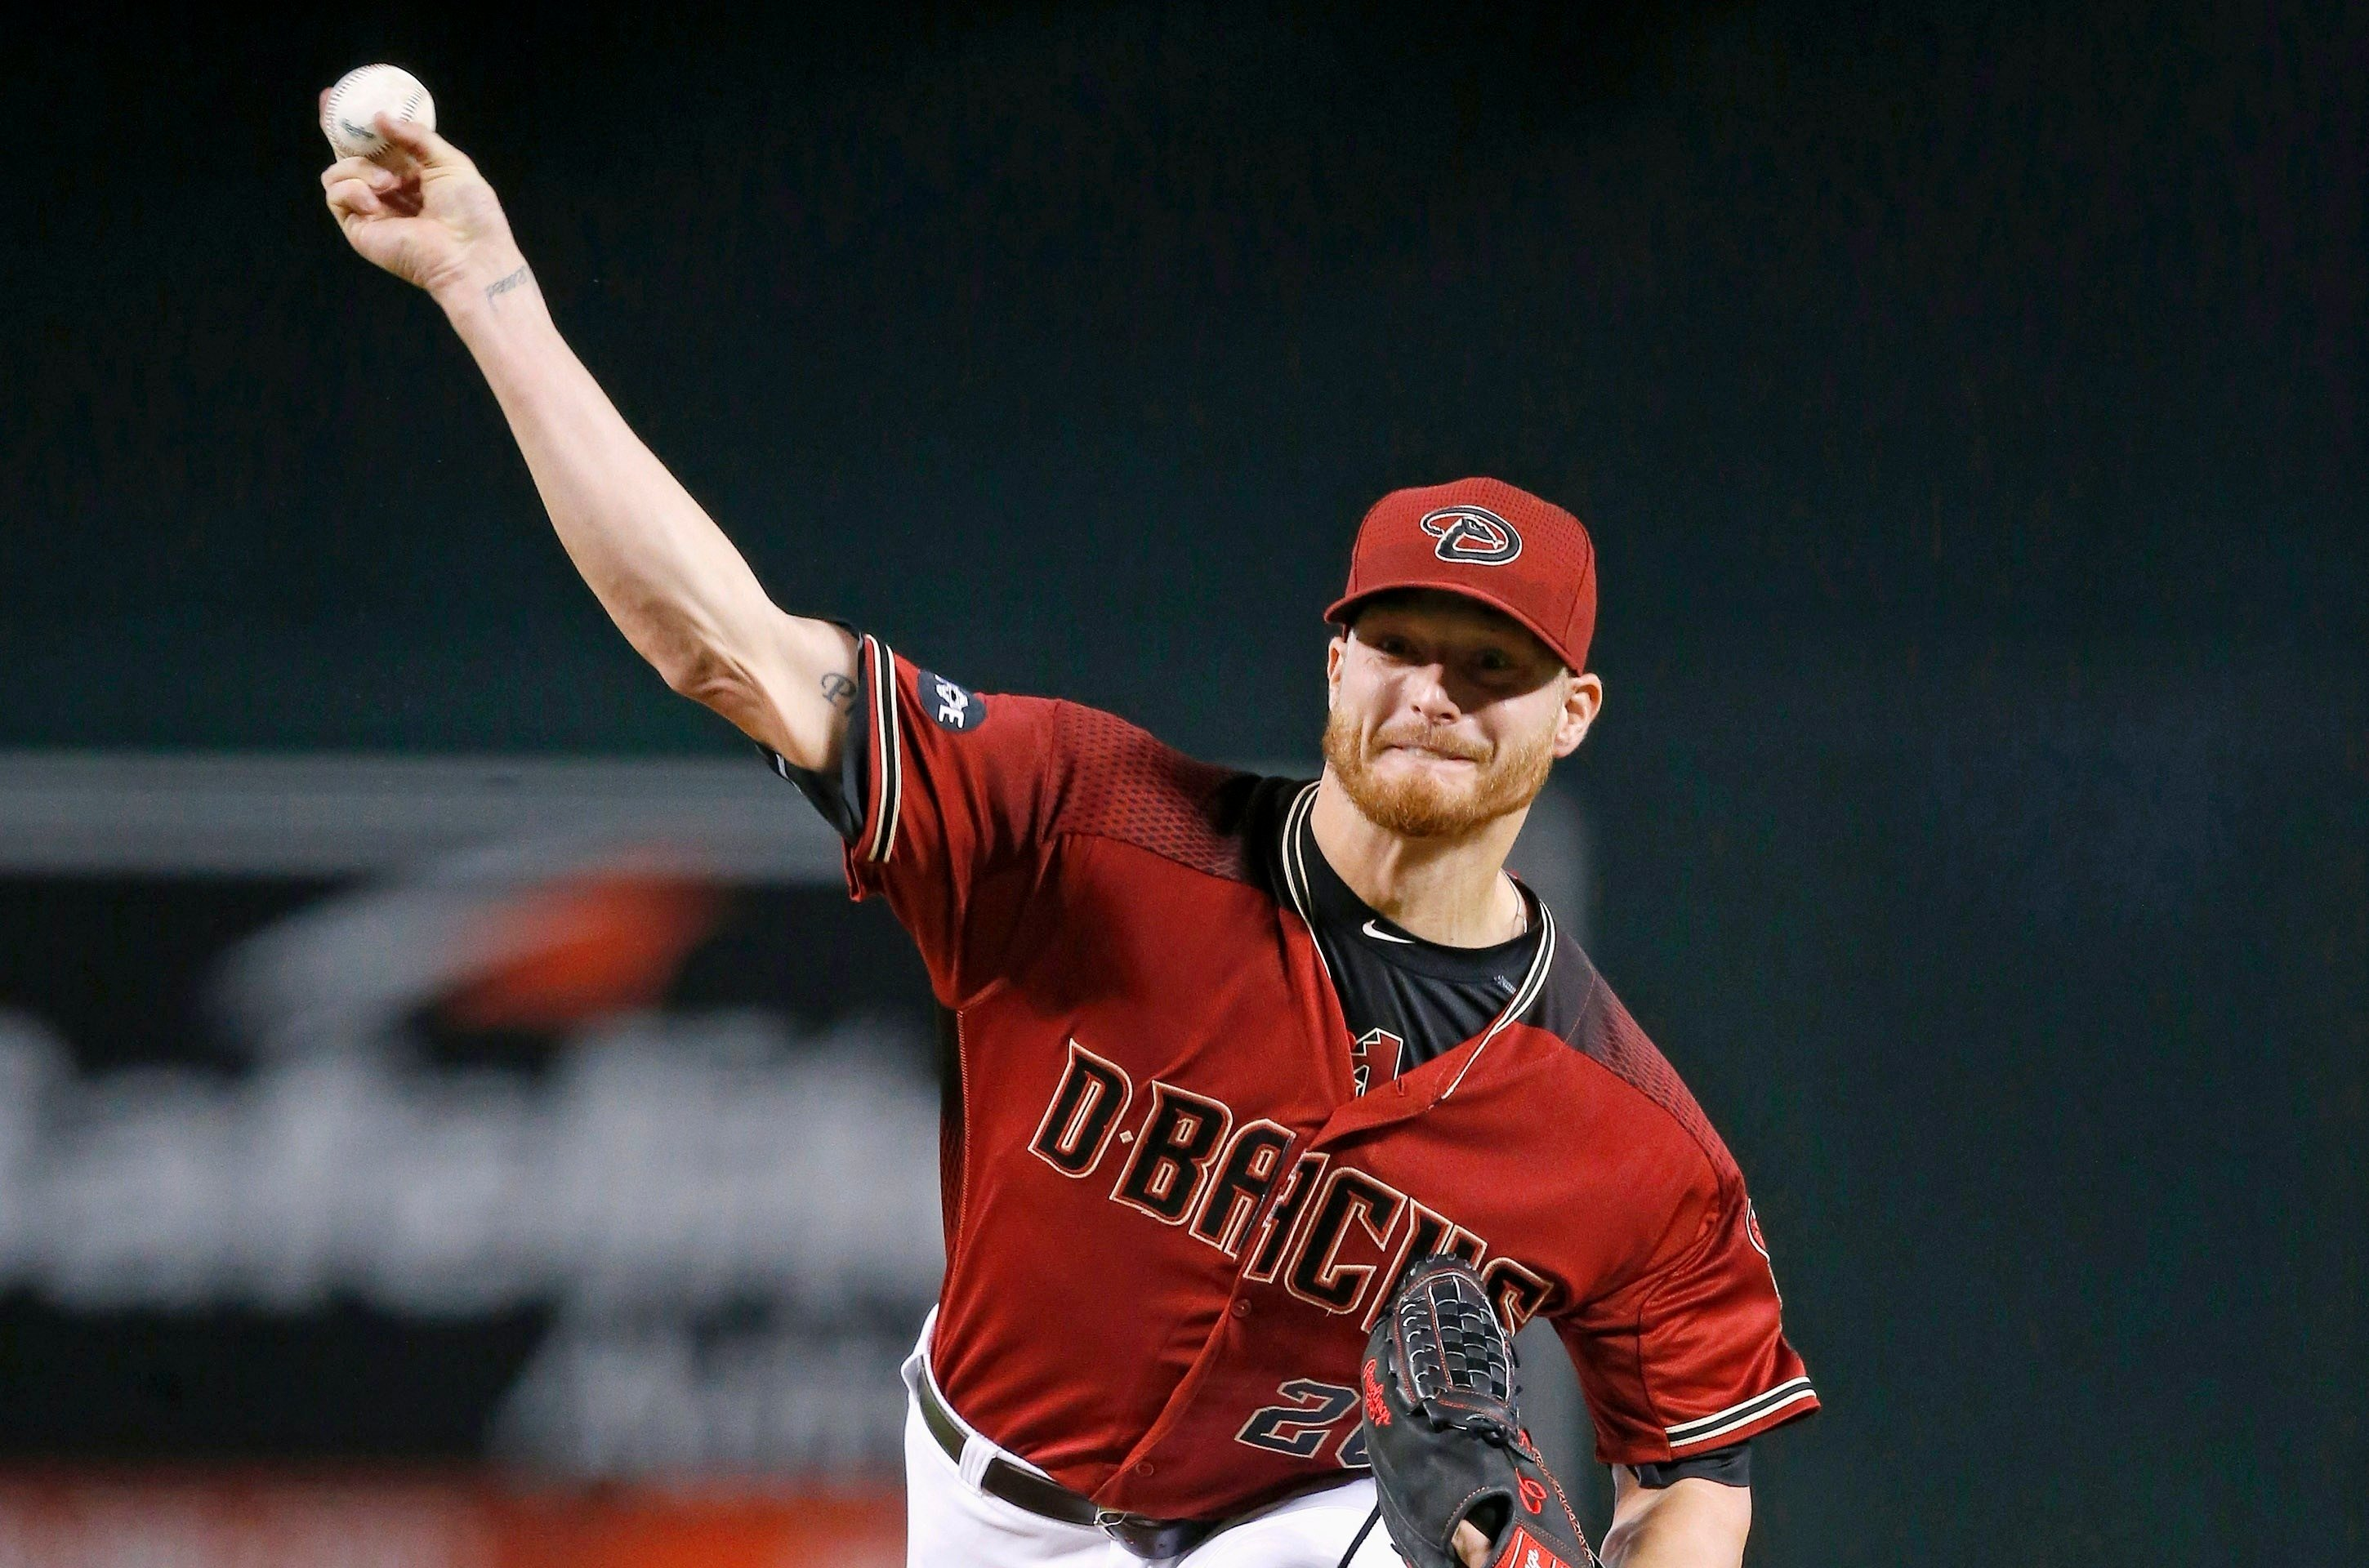 Arizona Diamondbacks' Shelby Miller throws a pitch against the San Diego Padres during the first inning of a baseball game Wednesday, July 6, 2016, in Phoenix. (AP Photo/Ross D. Franklin)